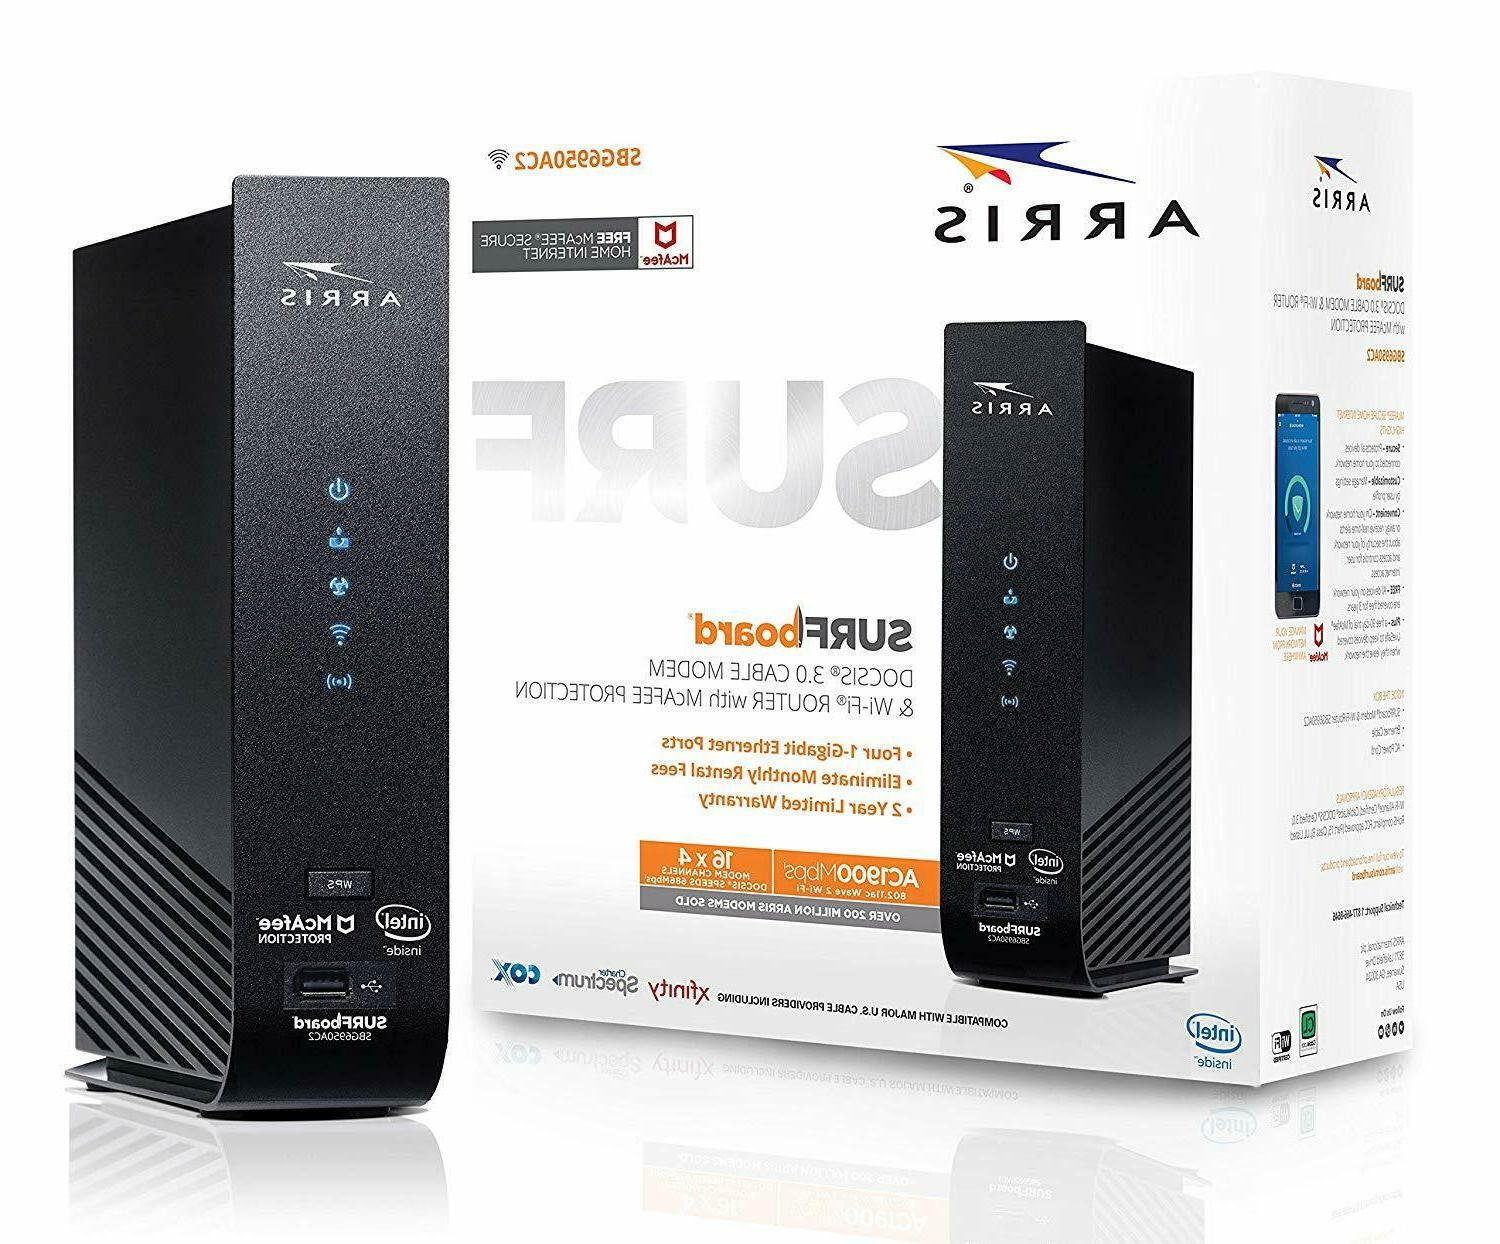 surfboard 16x4 cable modem ac1900 dual band